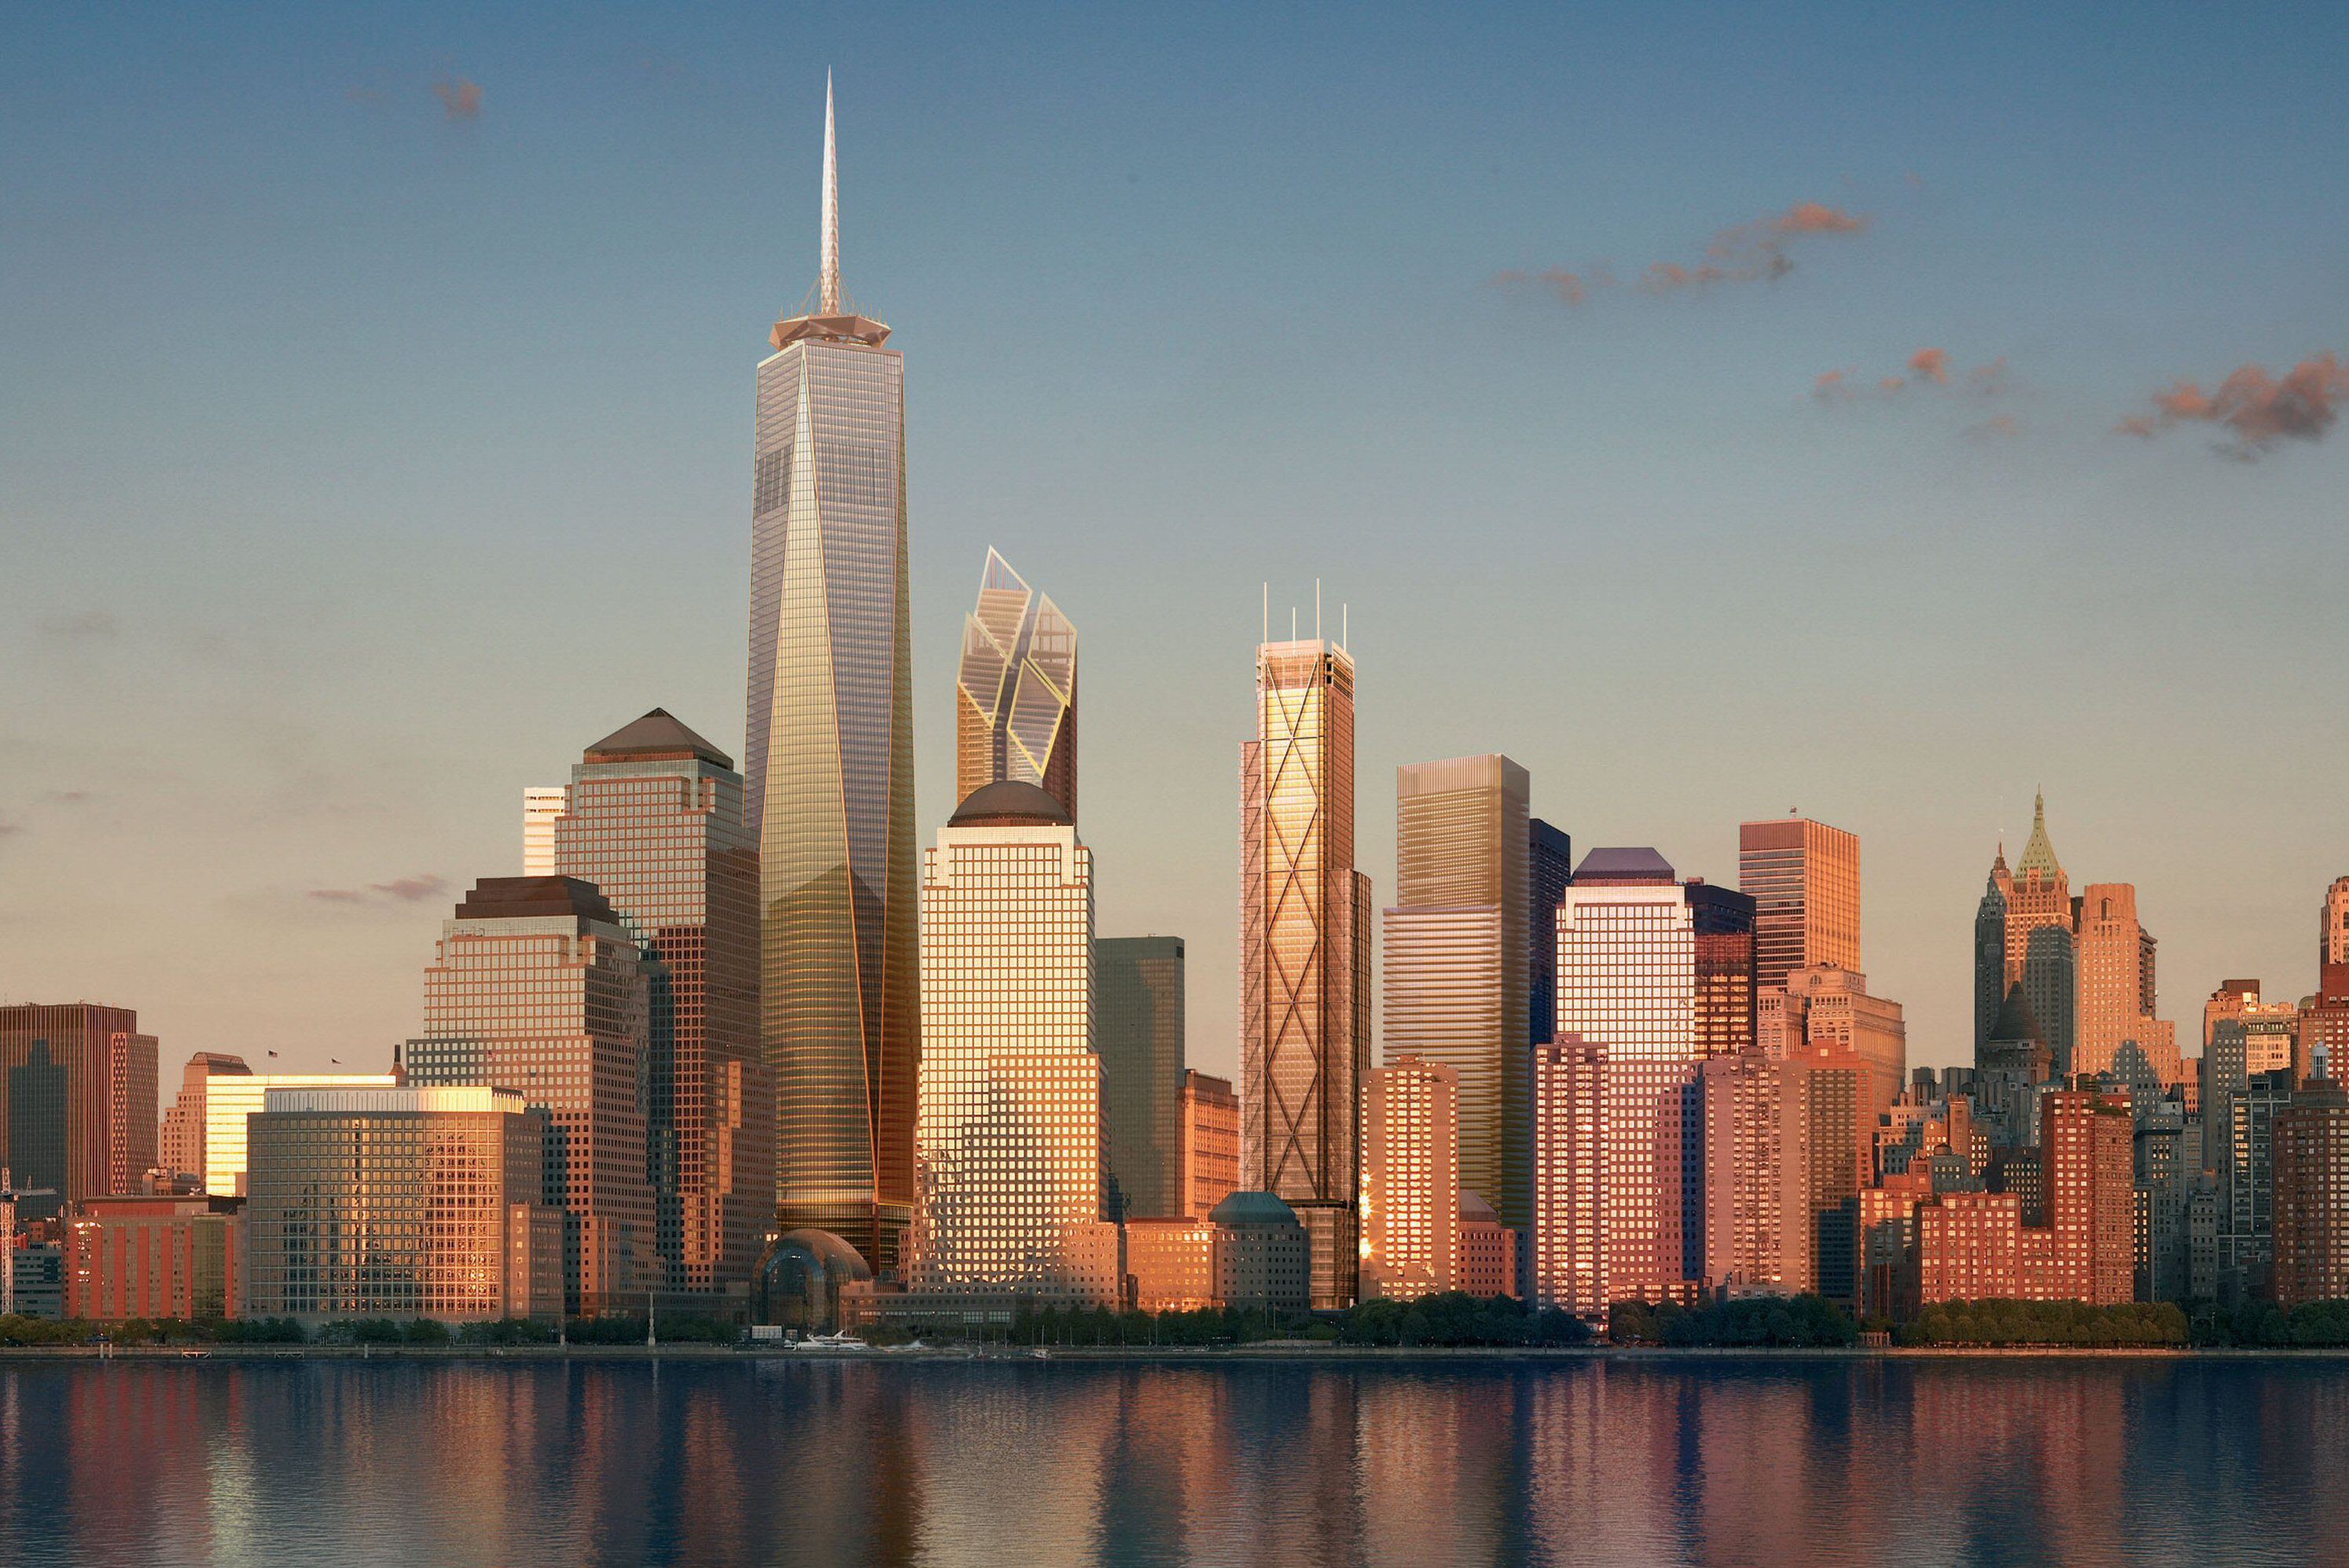 rendering of NYC skyline with new skyscrapers in Lower Manhattan